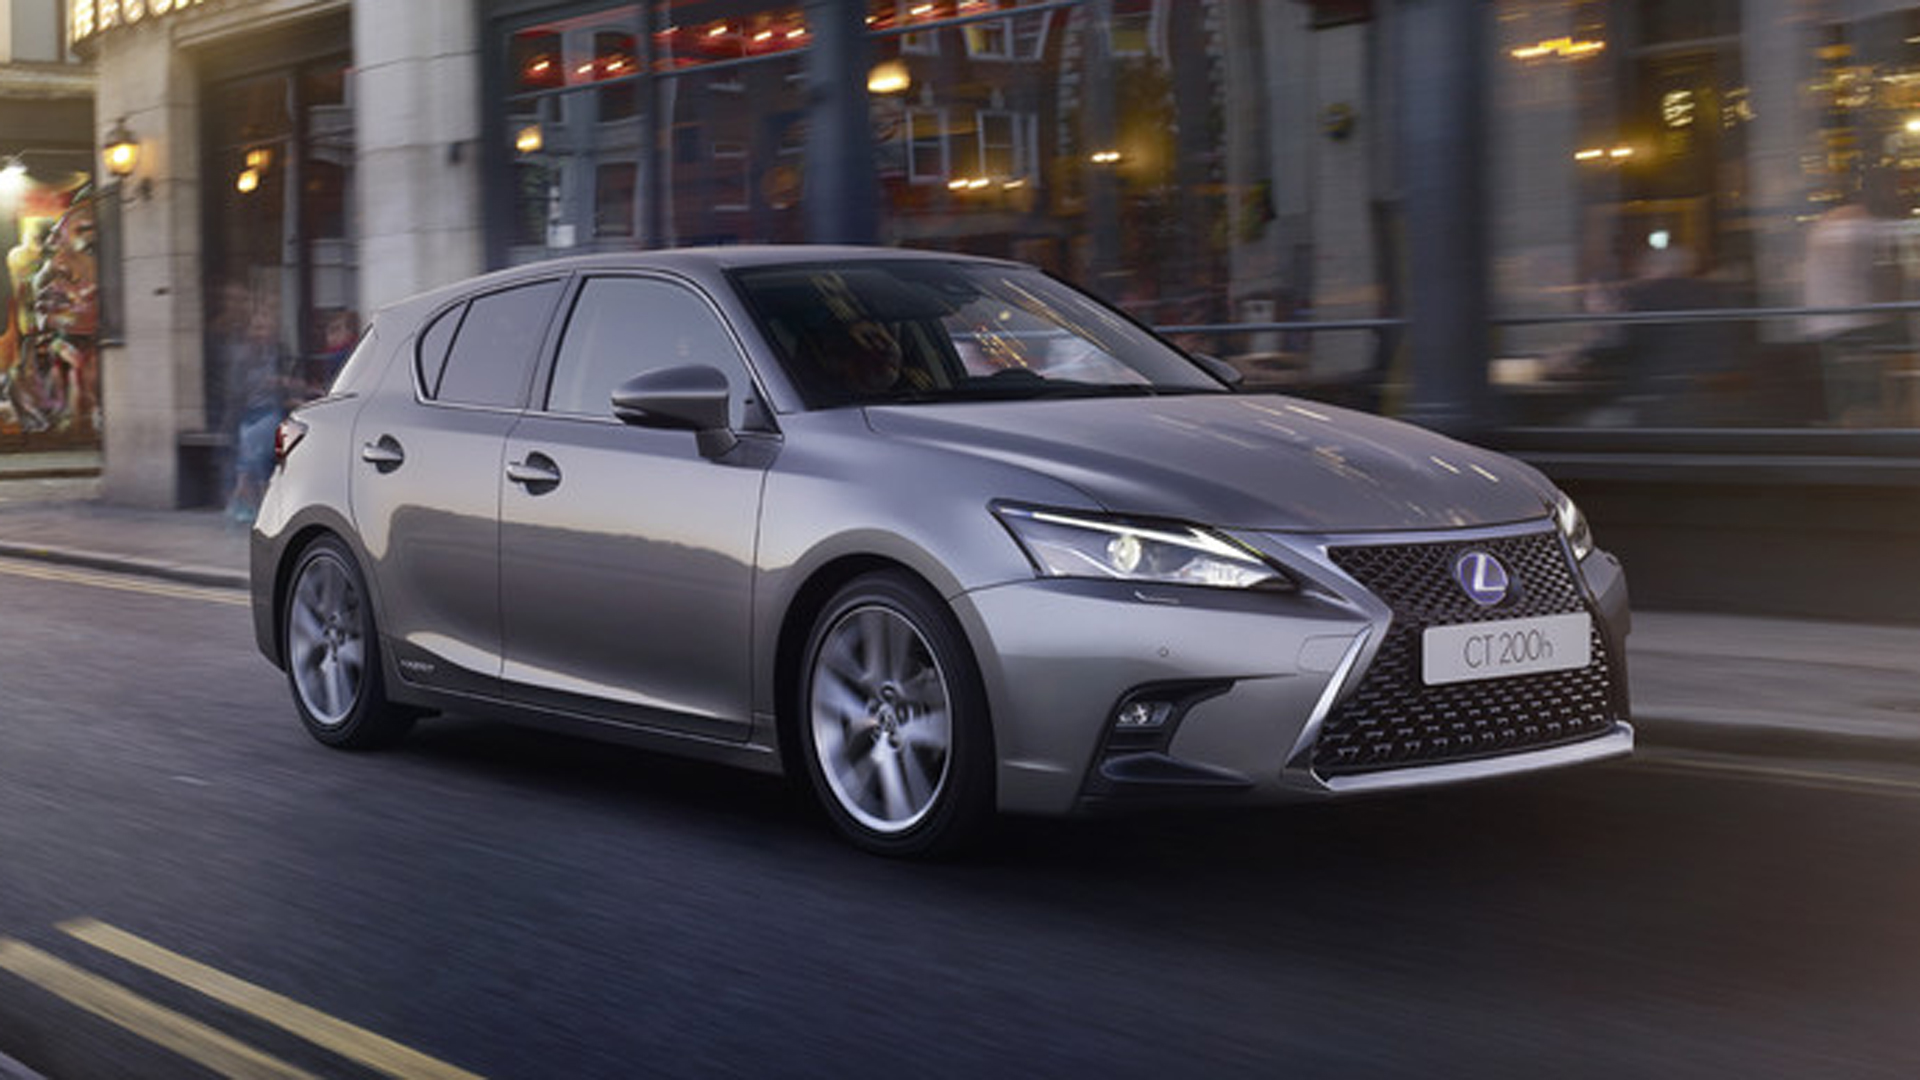 Lexus Ct200h Used >> New Used Lexus Ct 200h Cars For Sale Auto Trader